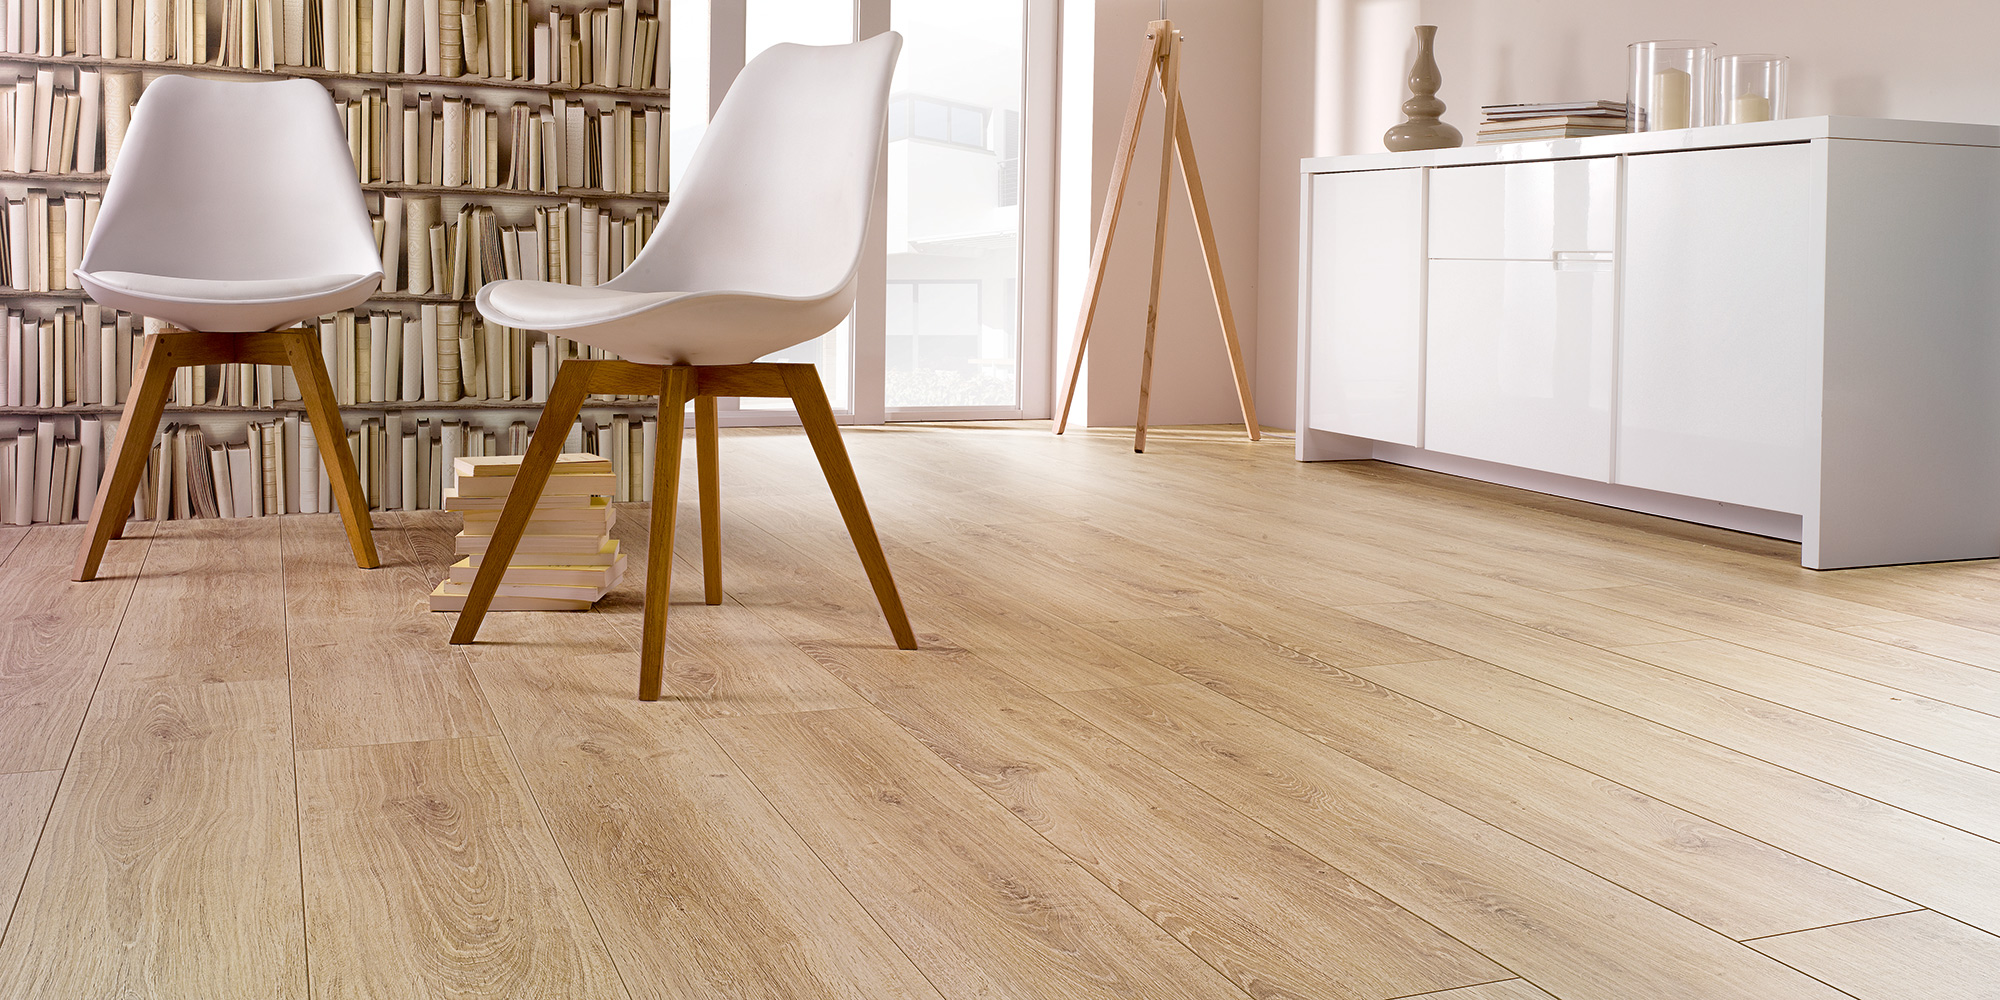 Top quality laminate wood flooring for renovated and new building floors in Ireland.